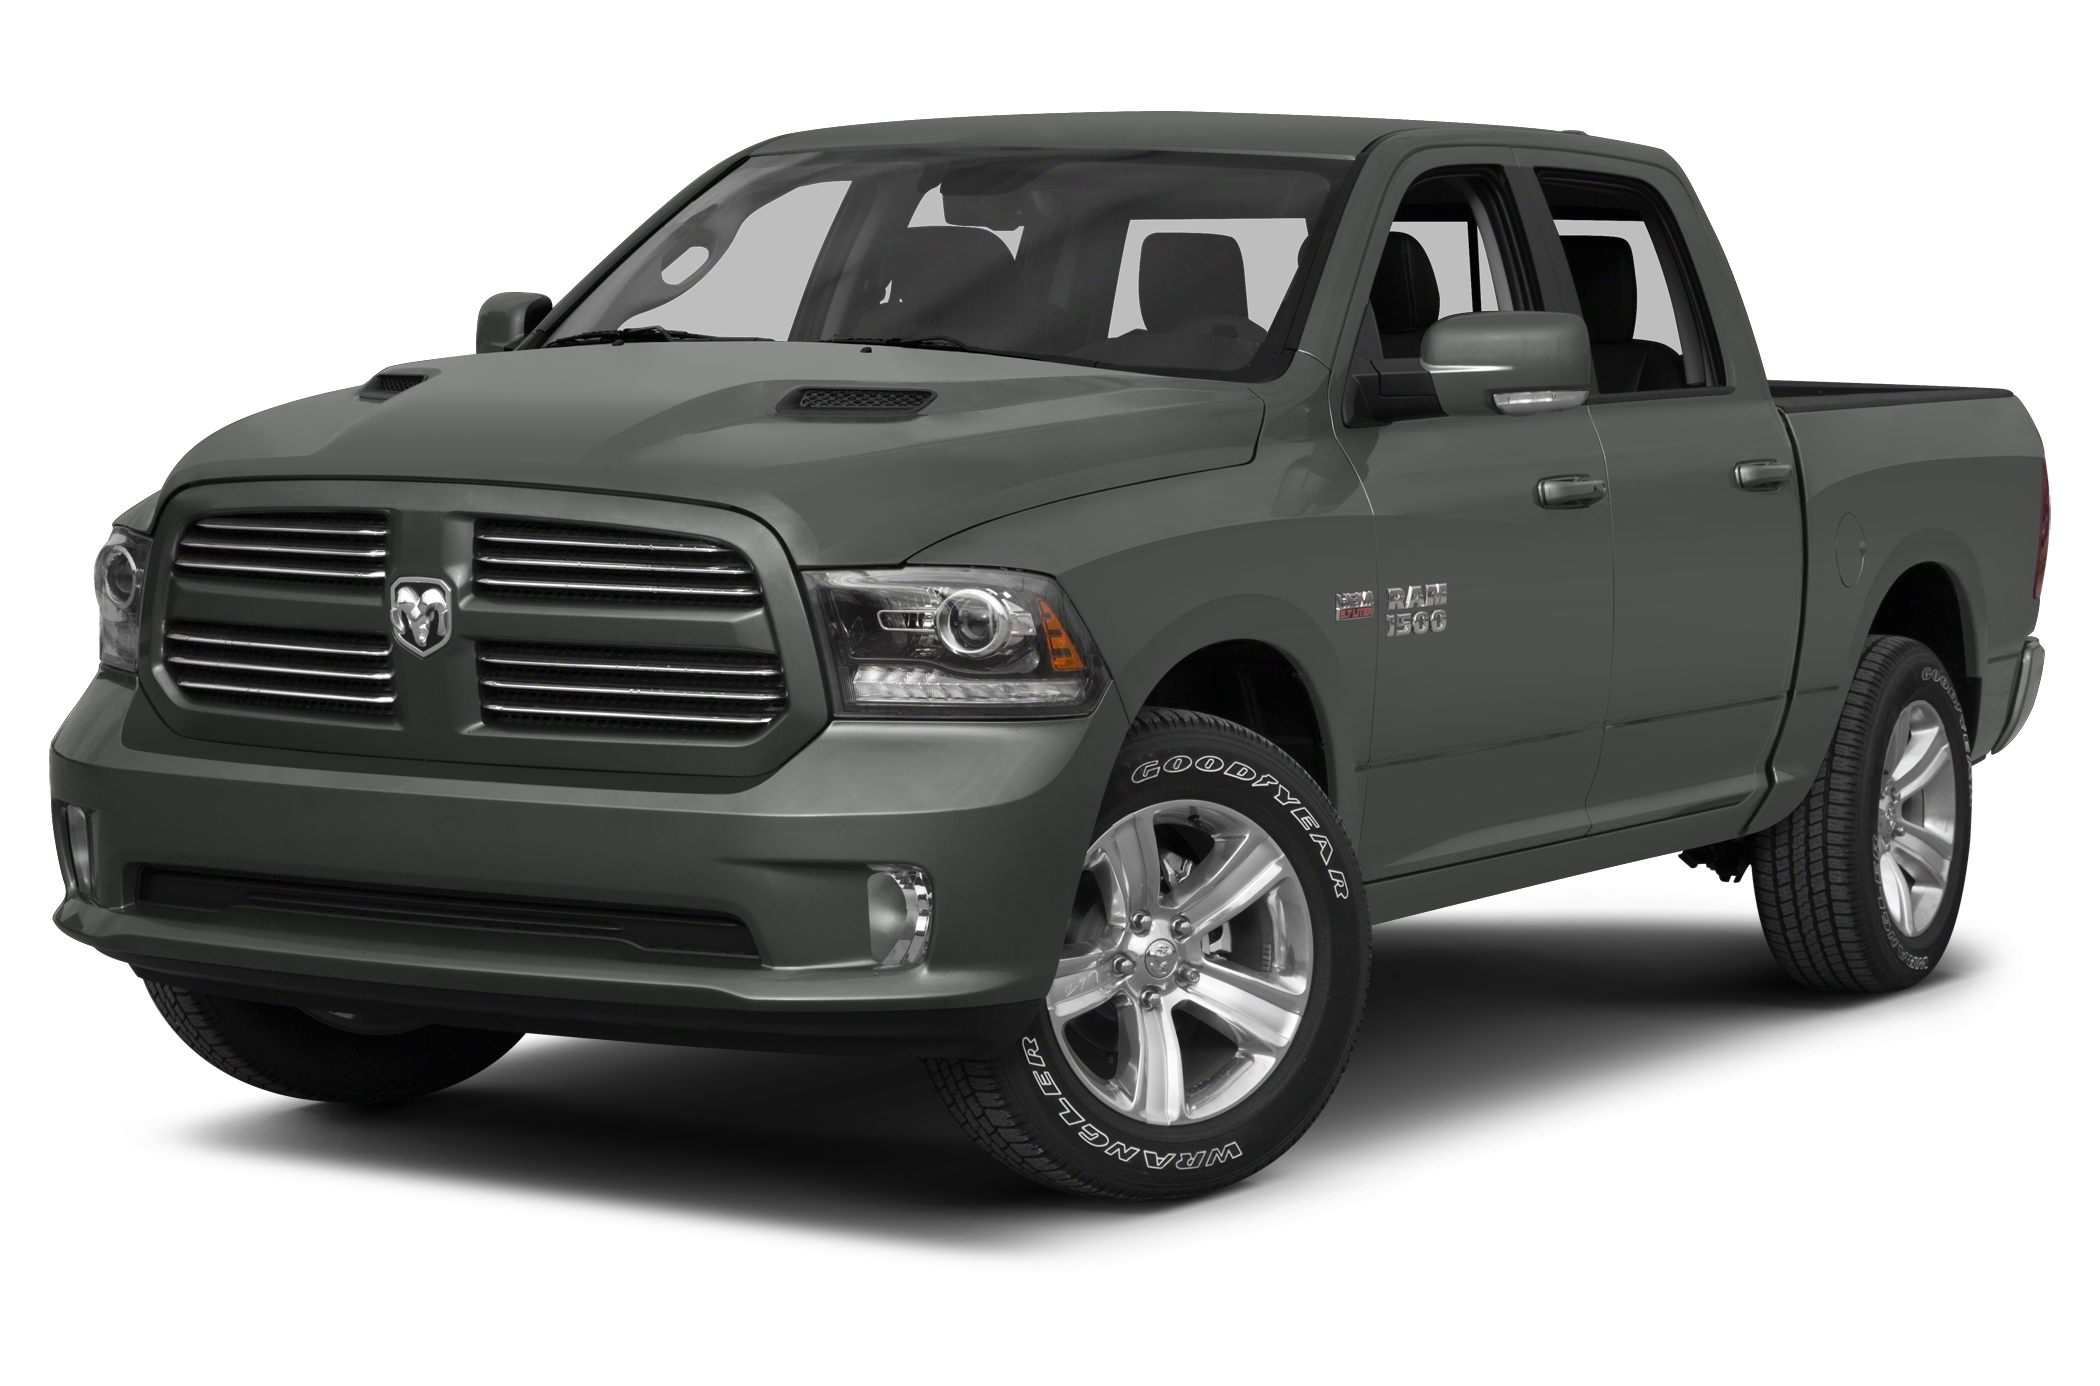 2013 RAM 1500 TradesmanExpress With a safety rating of 4 out of 5 stars everyone can feel safe